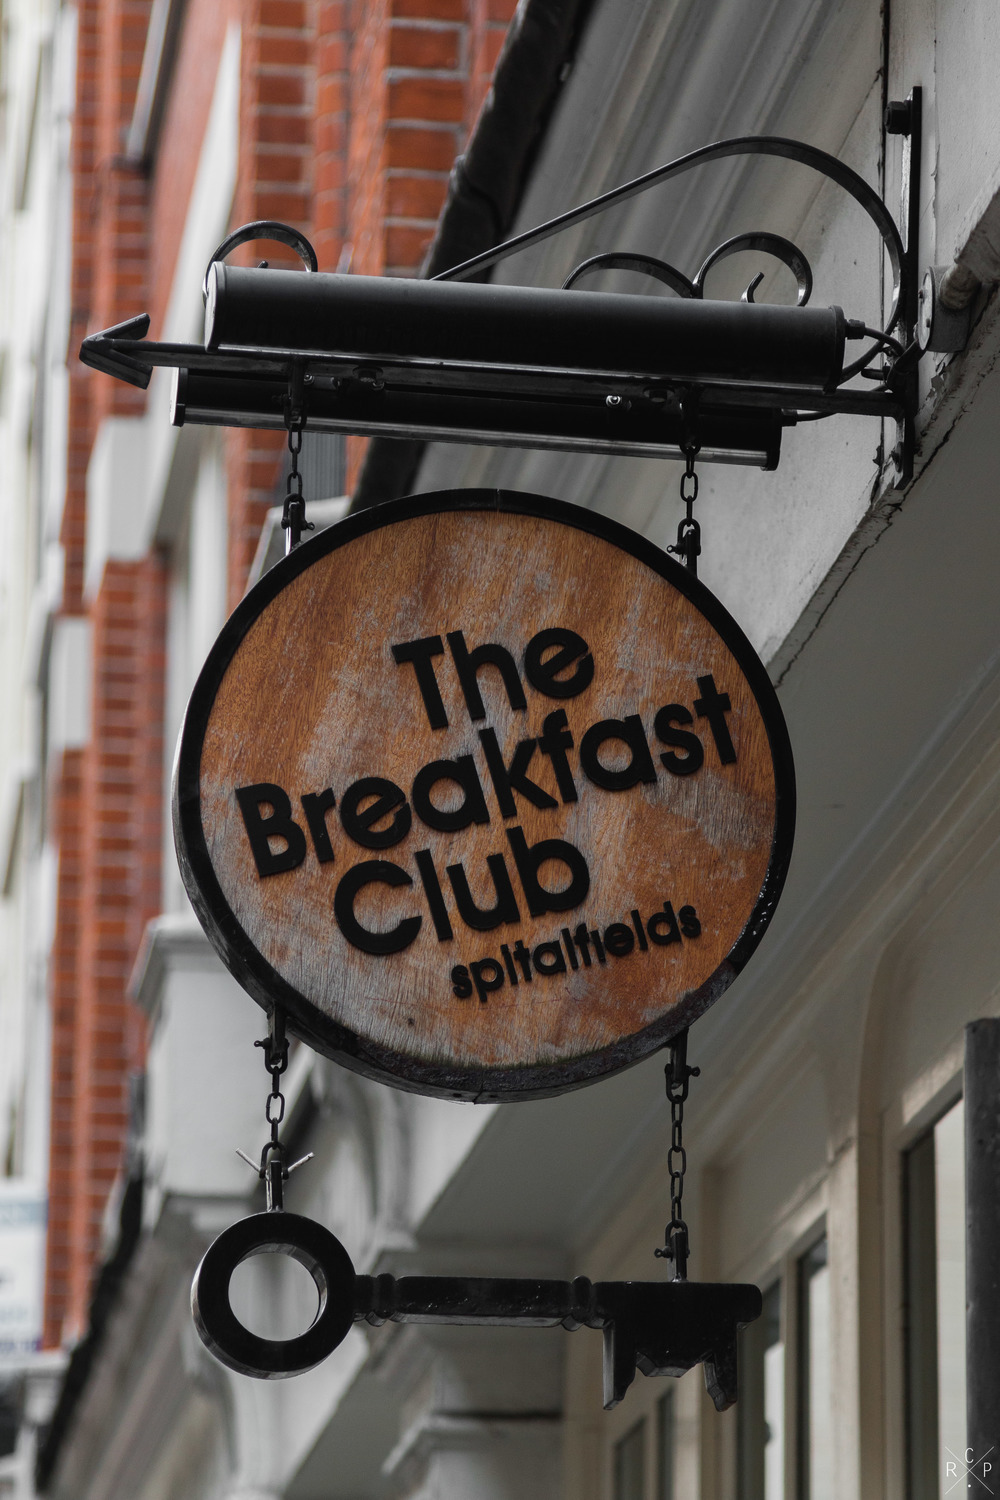 The Breakfast Club - Shoreditch, London, England 30/07/2016